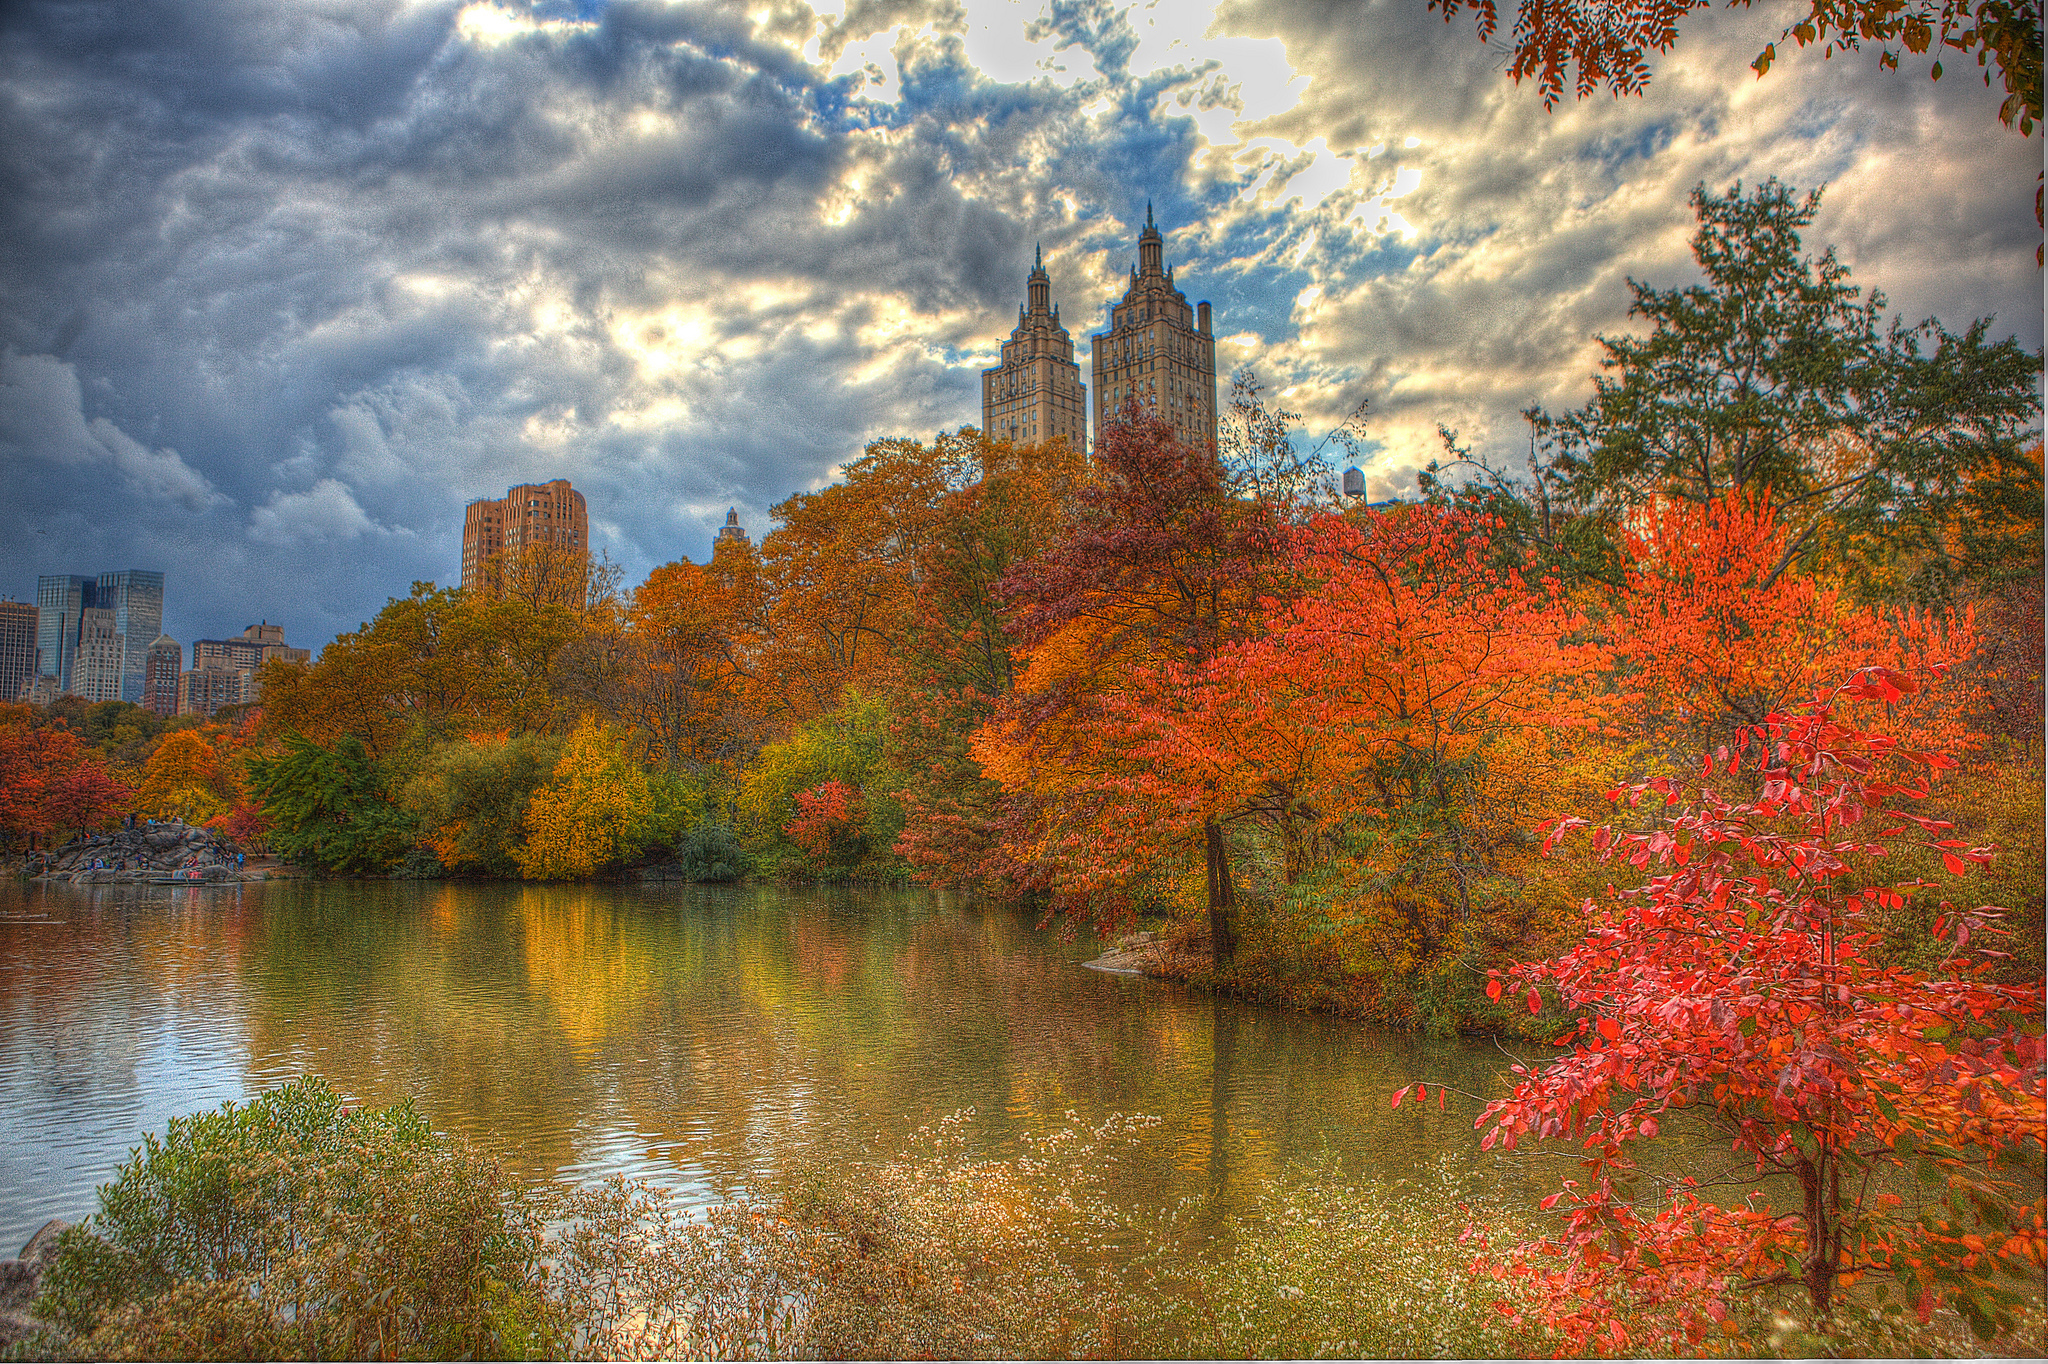 The fall foliage around NYC is going to suck this year